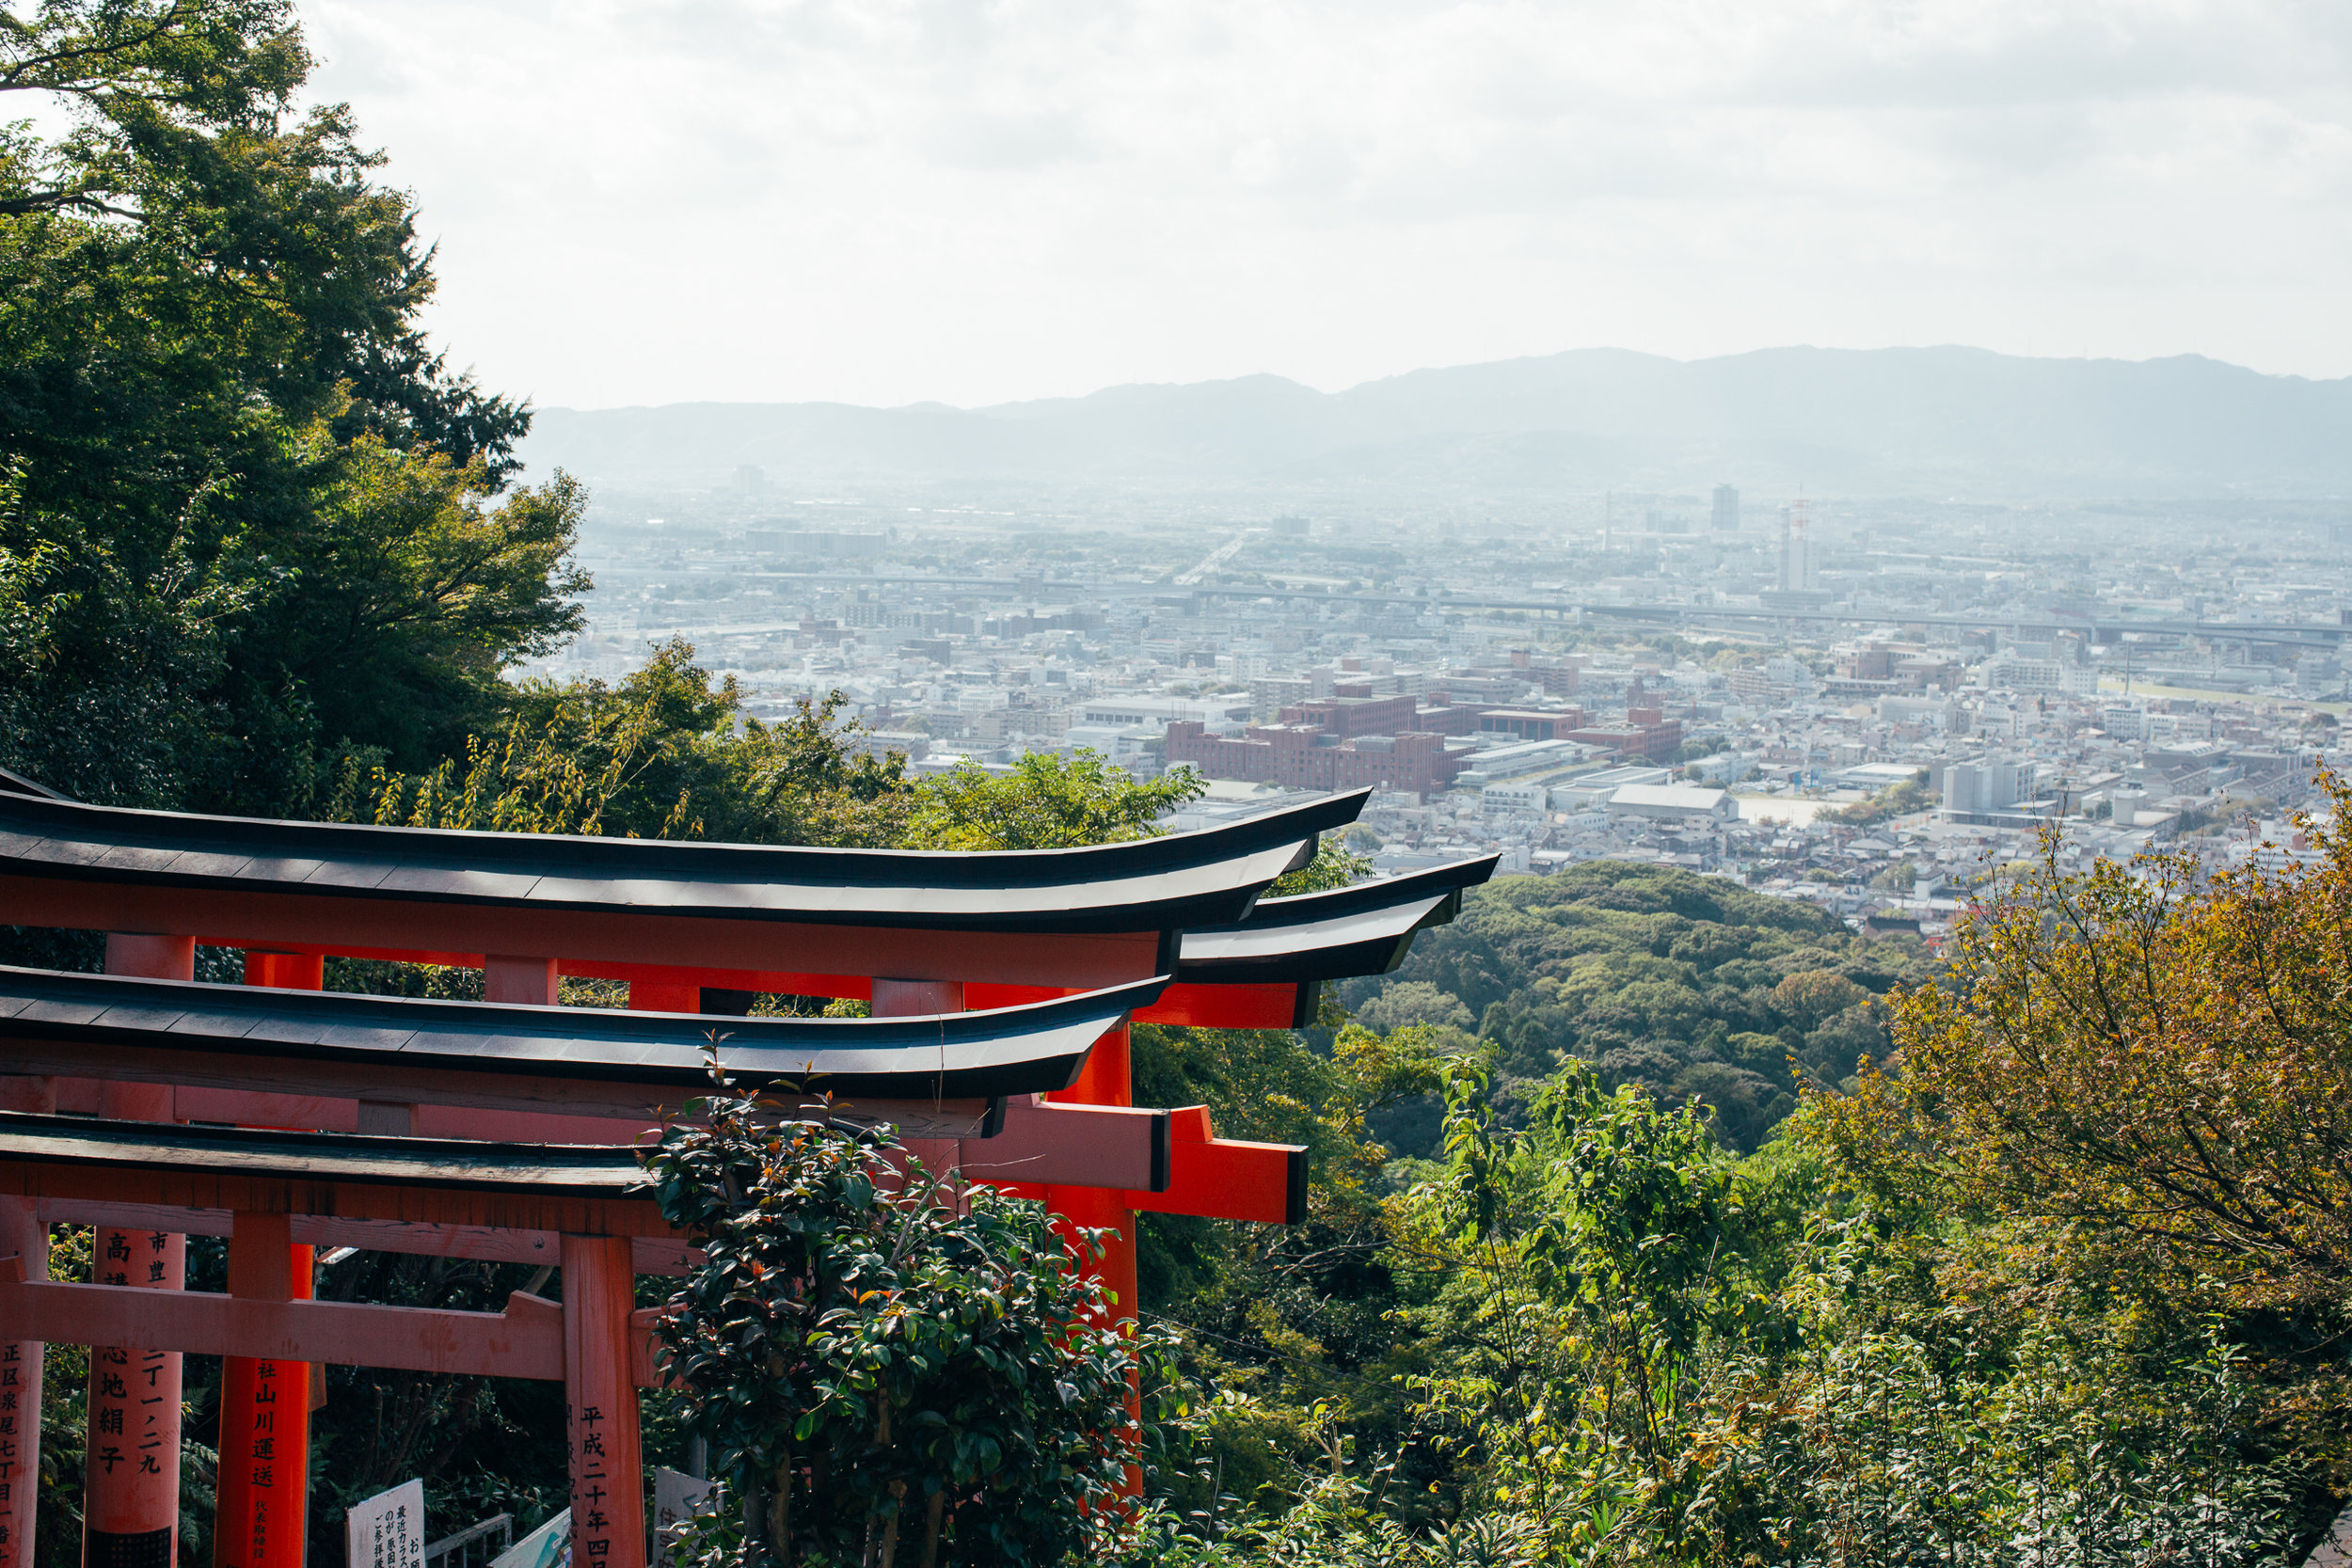 Halfway up and turning around to get a view of Kyoto. Can vaguely make out Kyoto Tower in the distance.